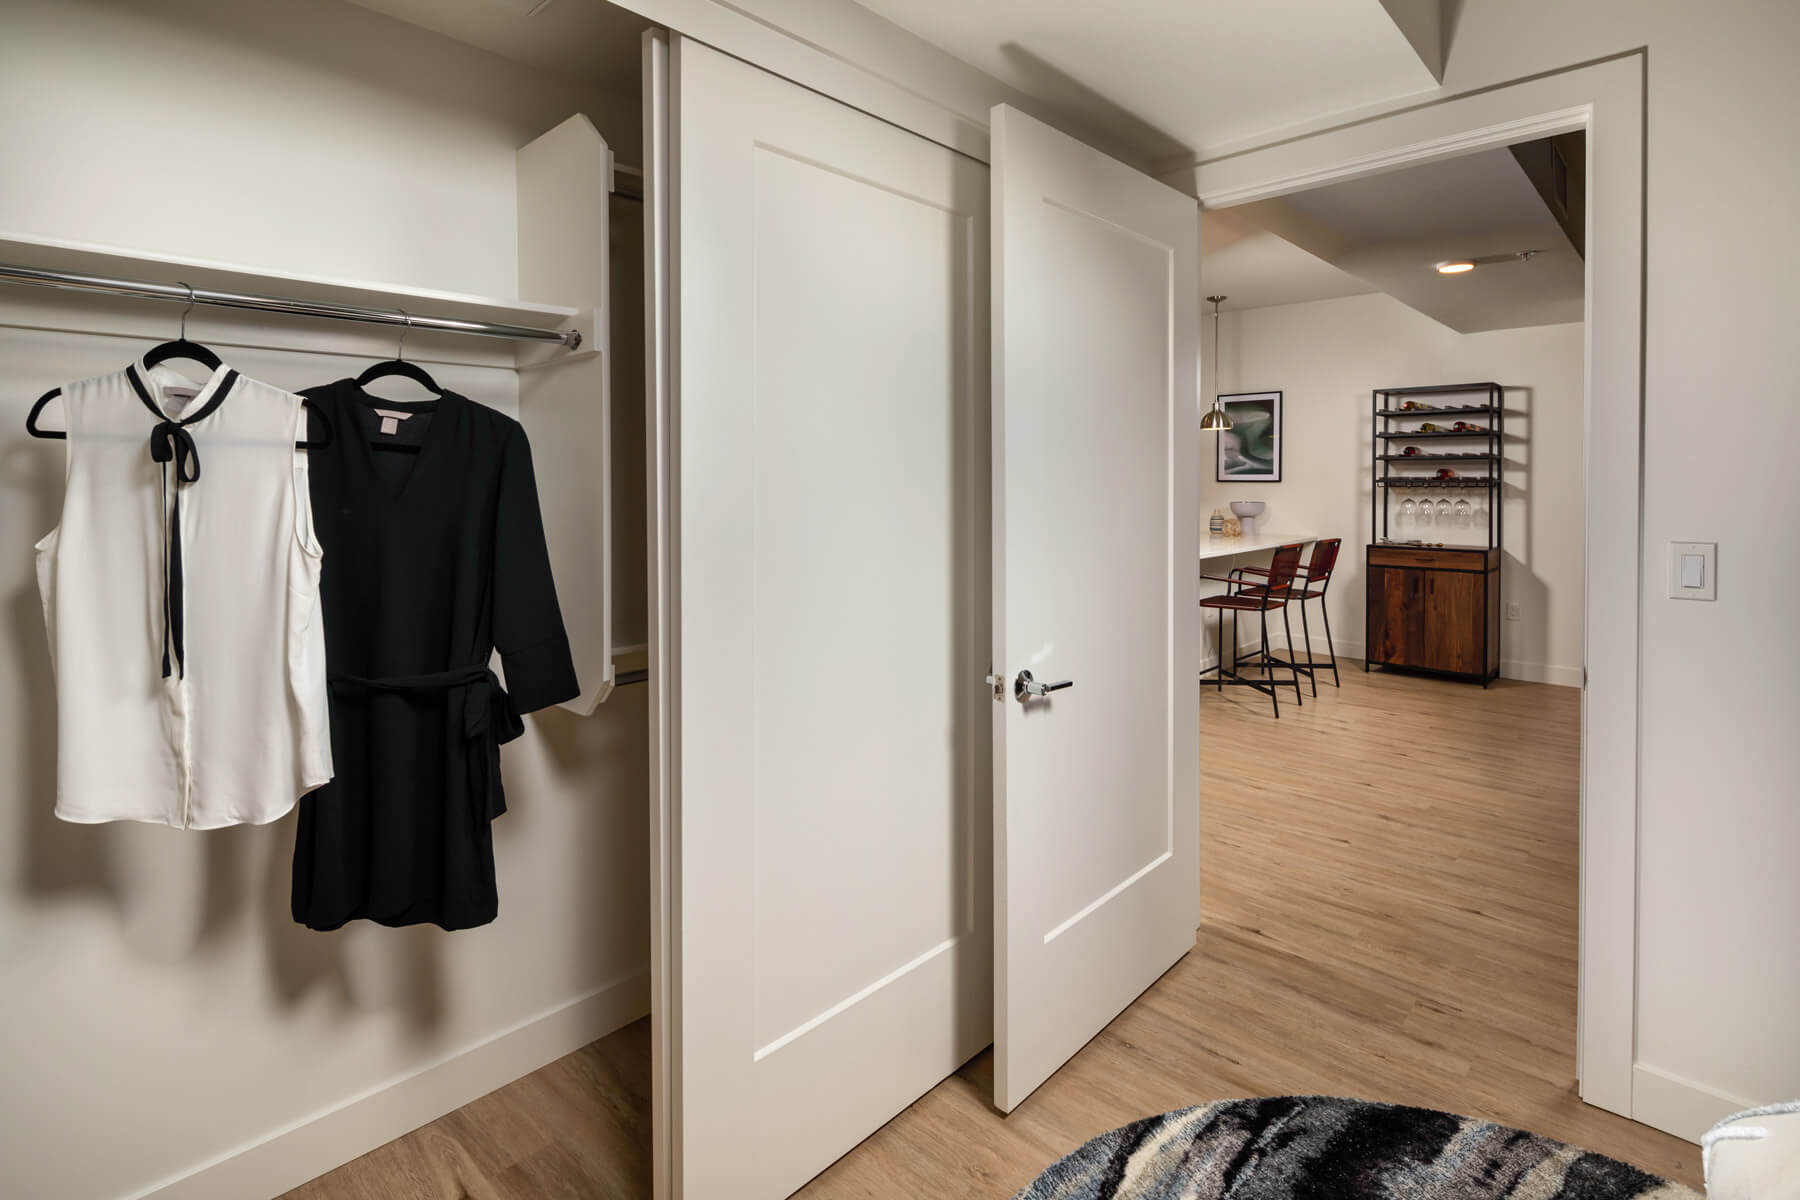 Two Bedroom Residence Guest Bedroom Closet